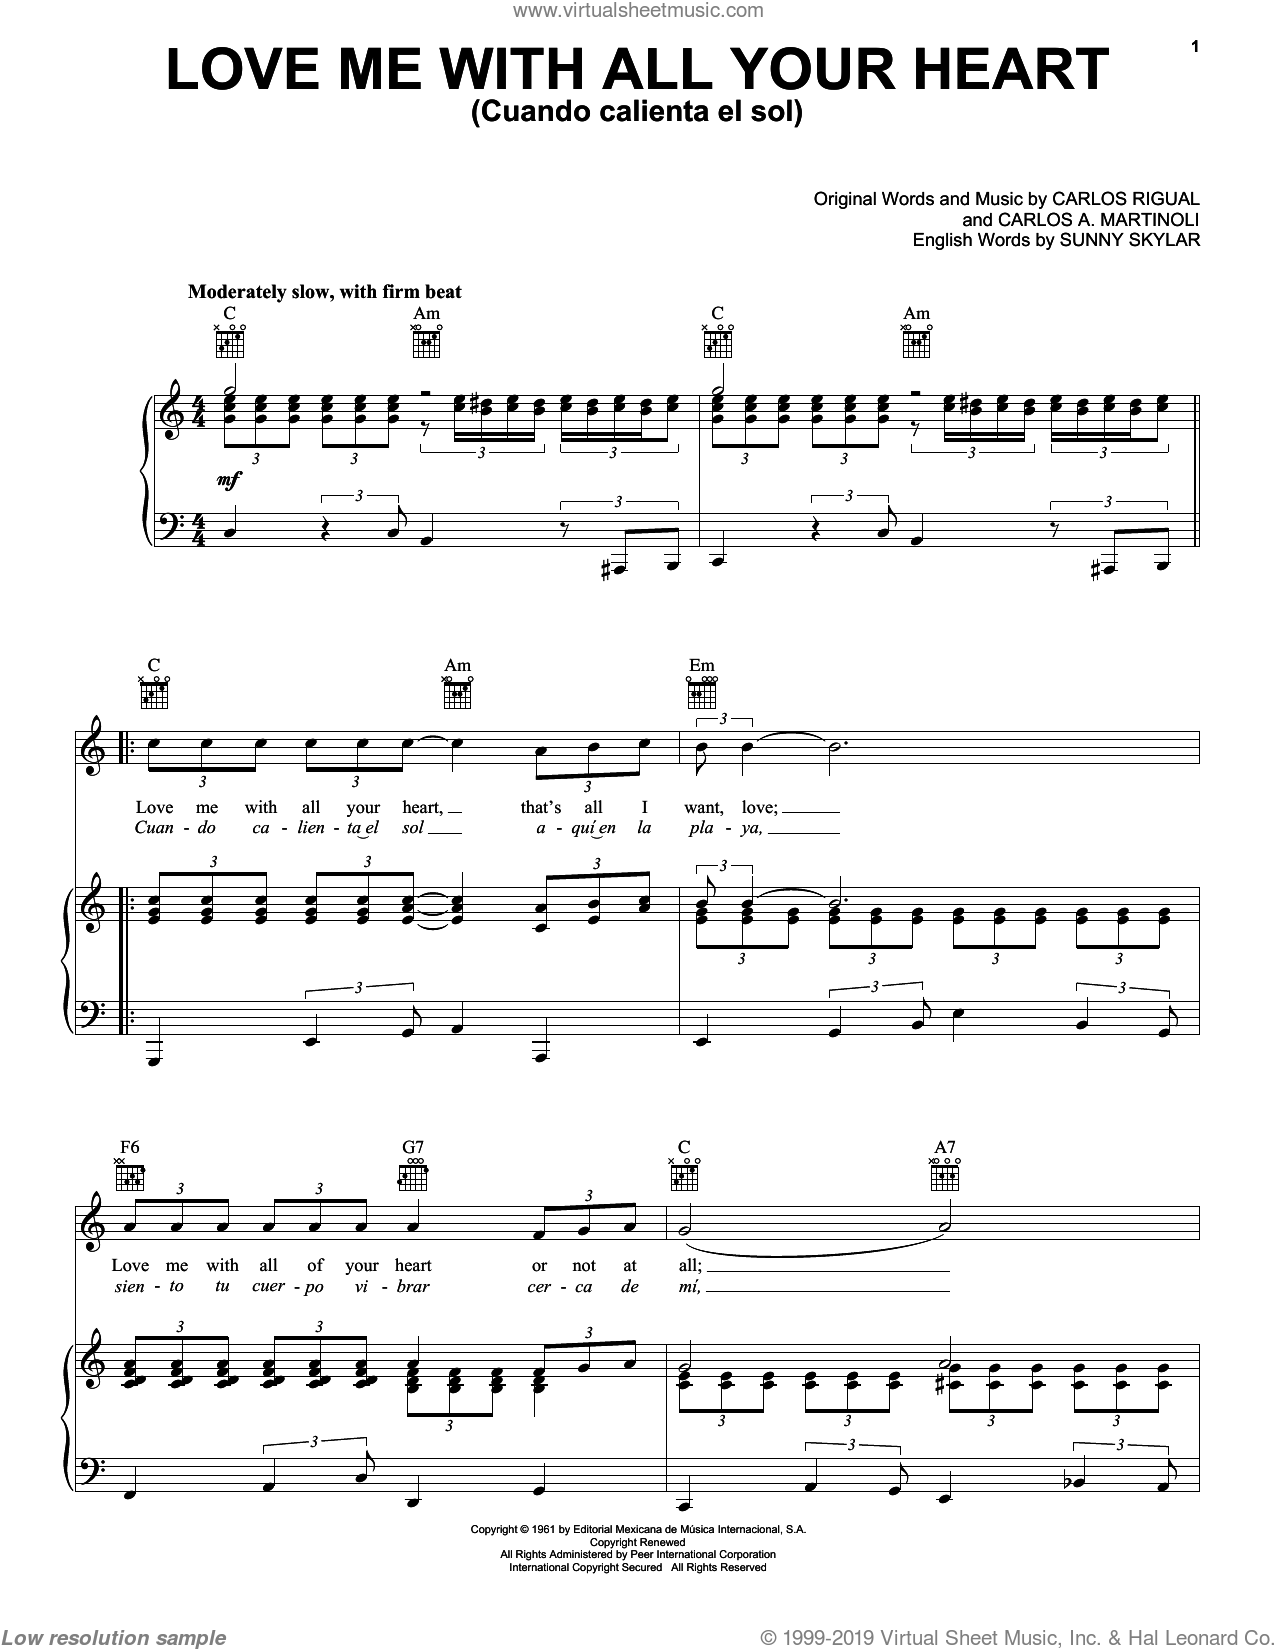 Love Me With All Your Heart (Cuando Calienta El Sol) sheet music for voice, piano or guitar by The Ray Charles Singers, Carlos A. Martinoli, Carlos Rigual and Sunny Skylar, intermediate skill level